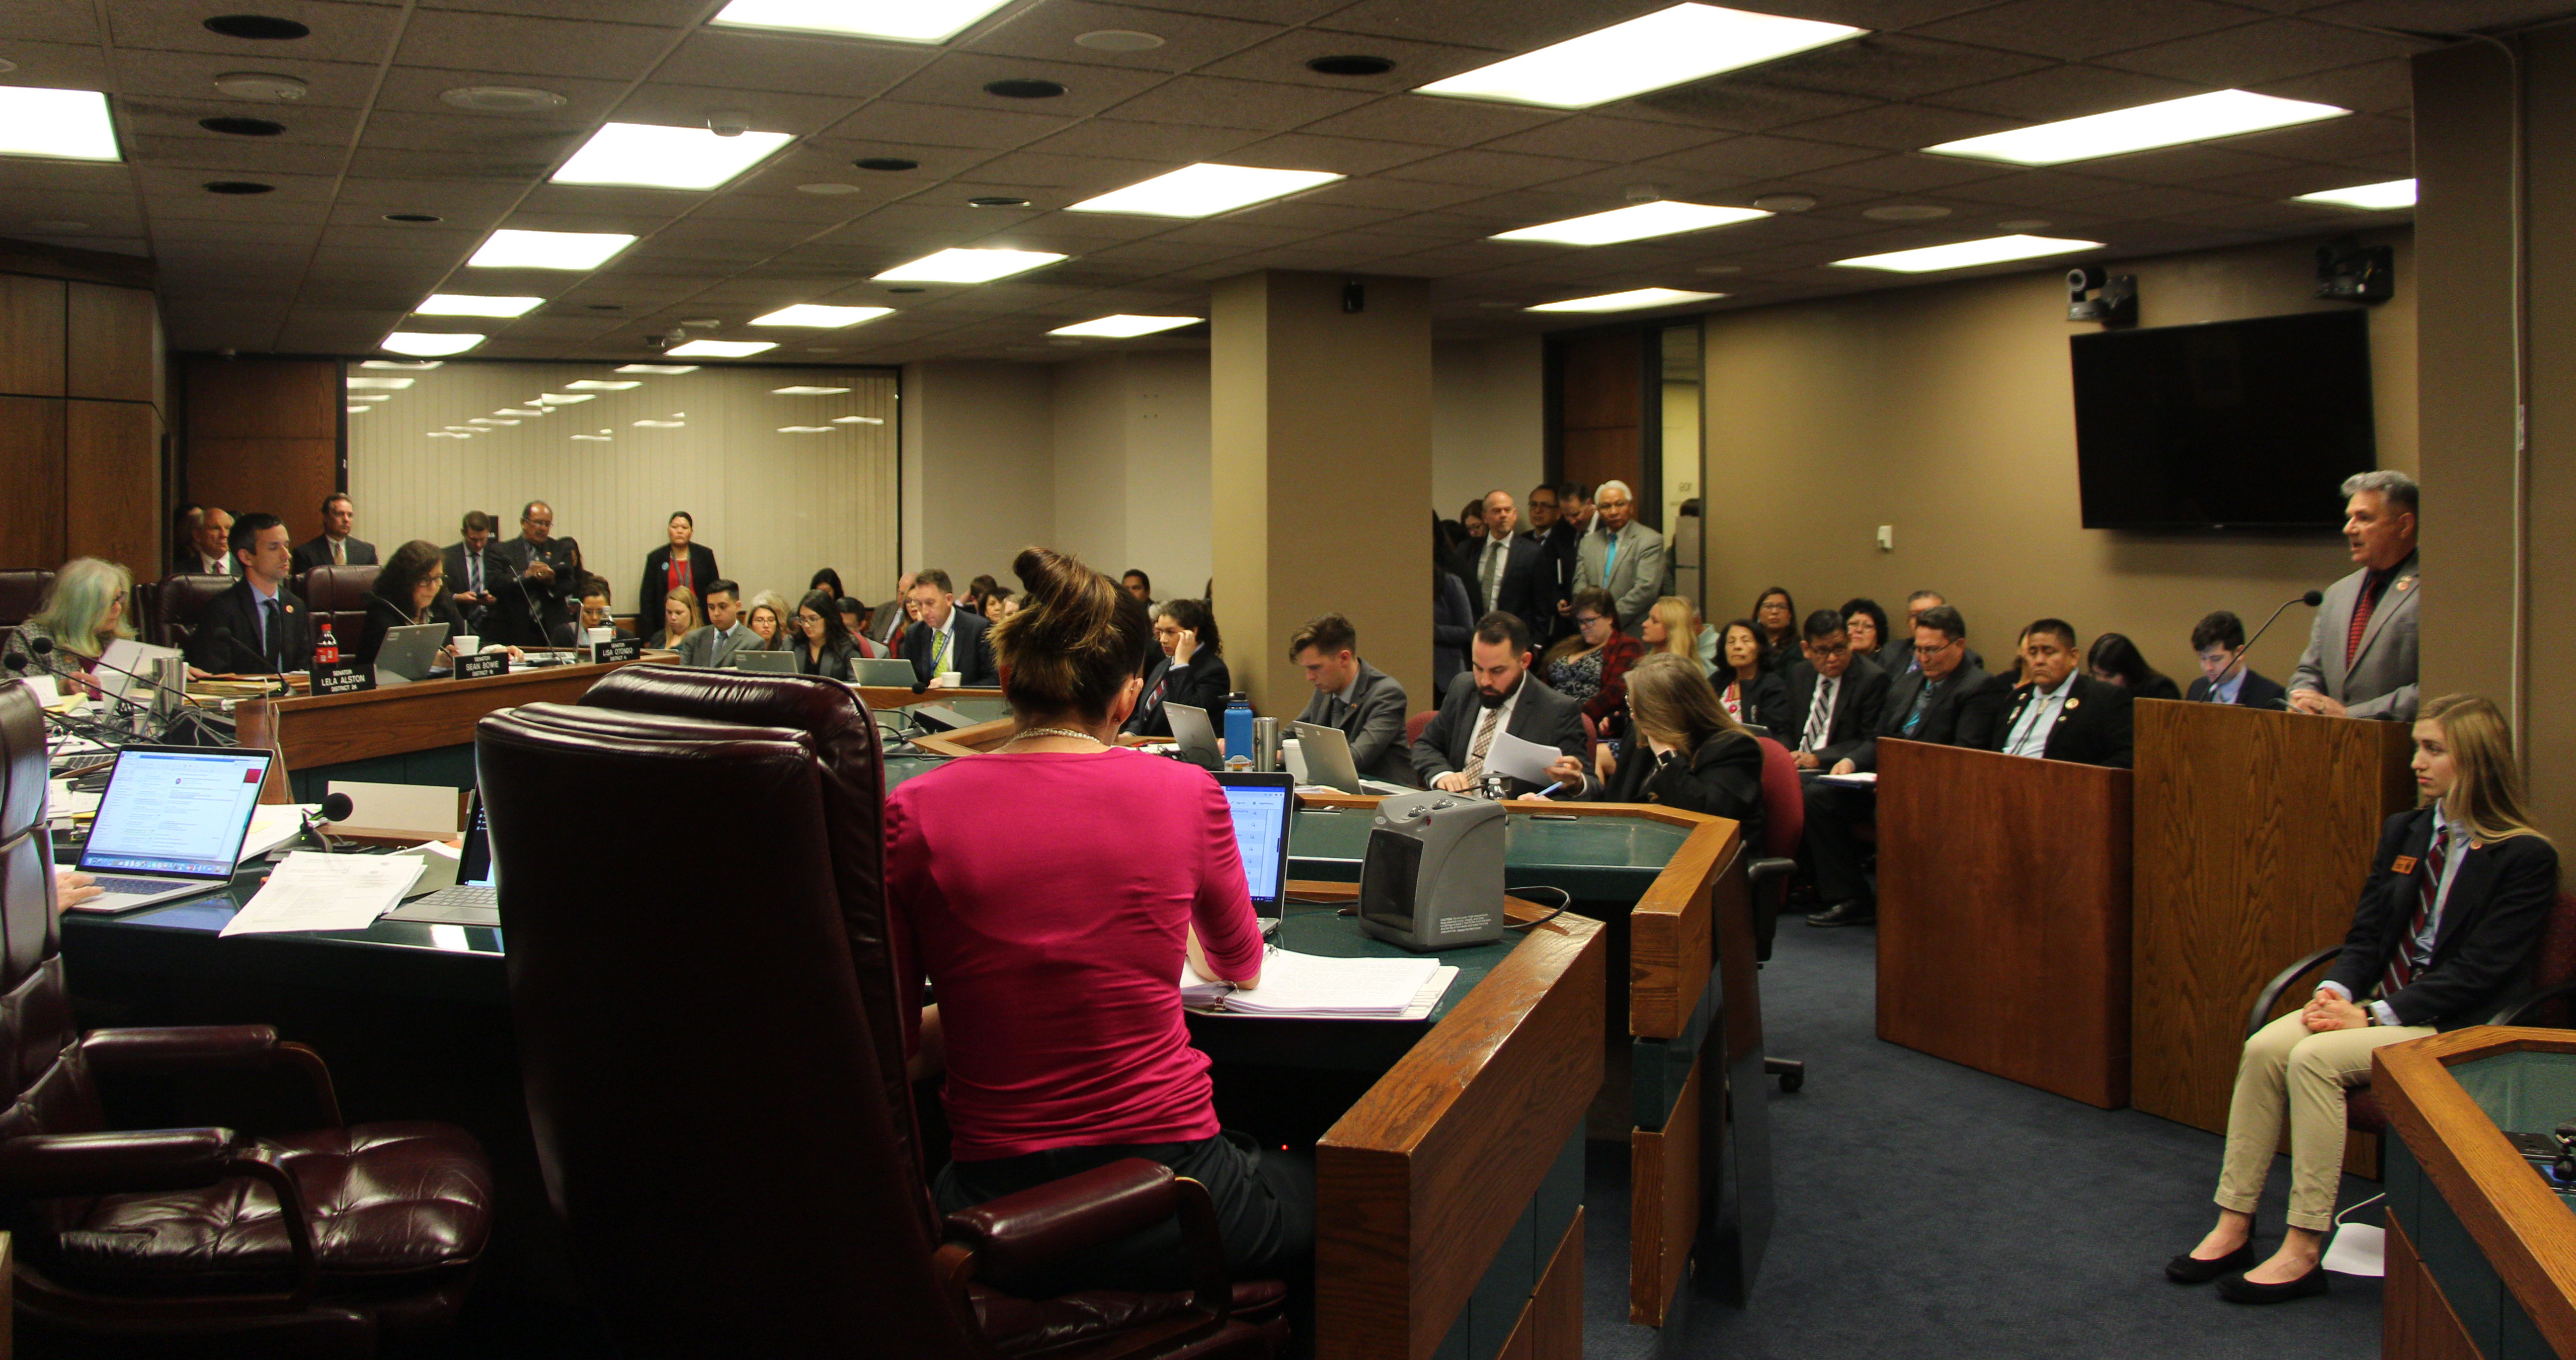 As tribes voice opposition, Arizona sports betting bill moves forward